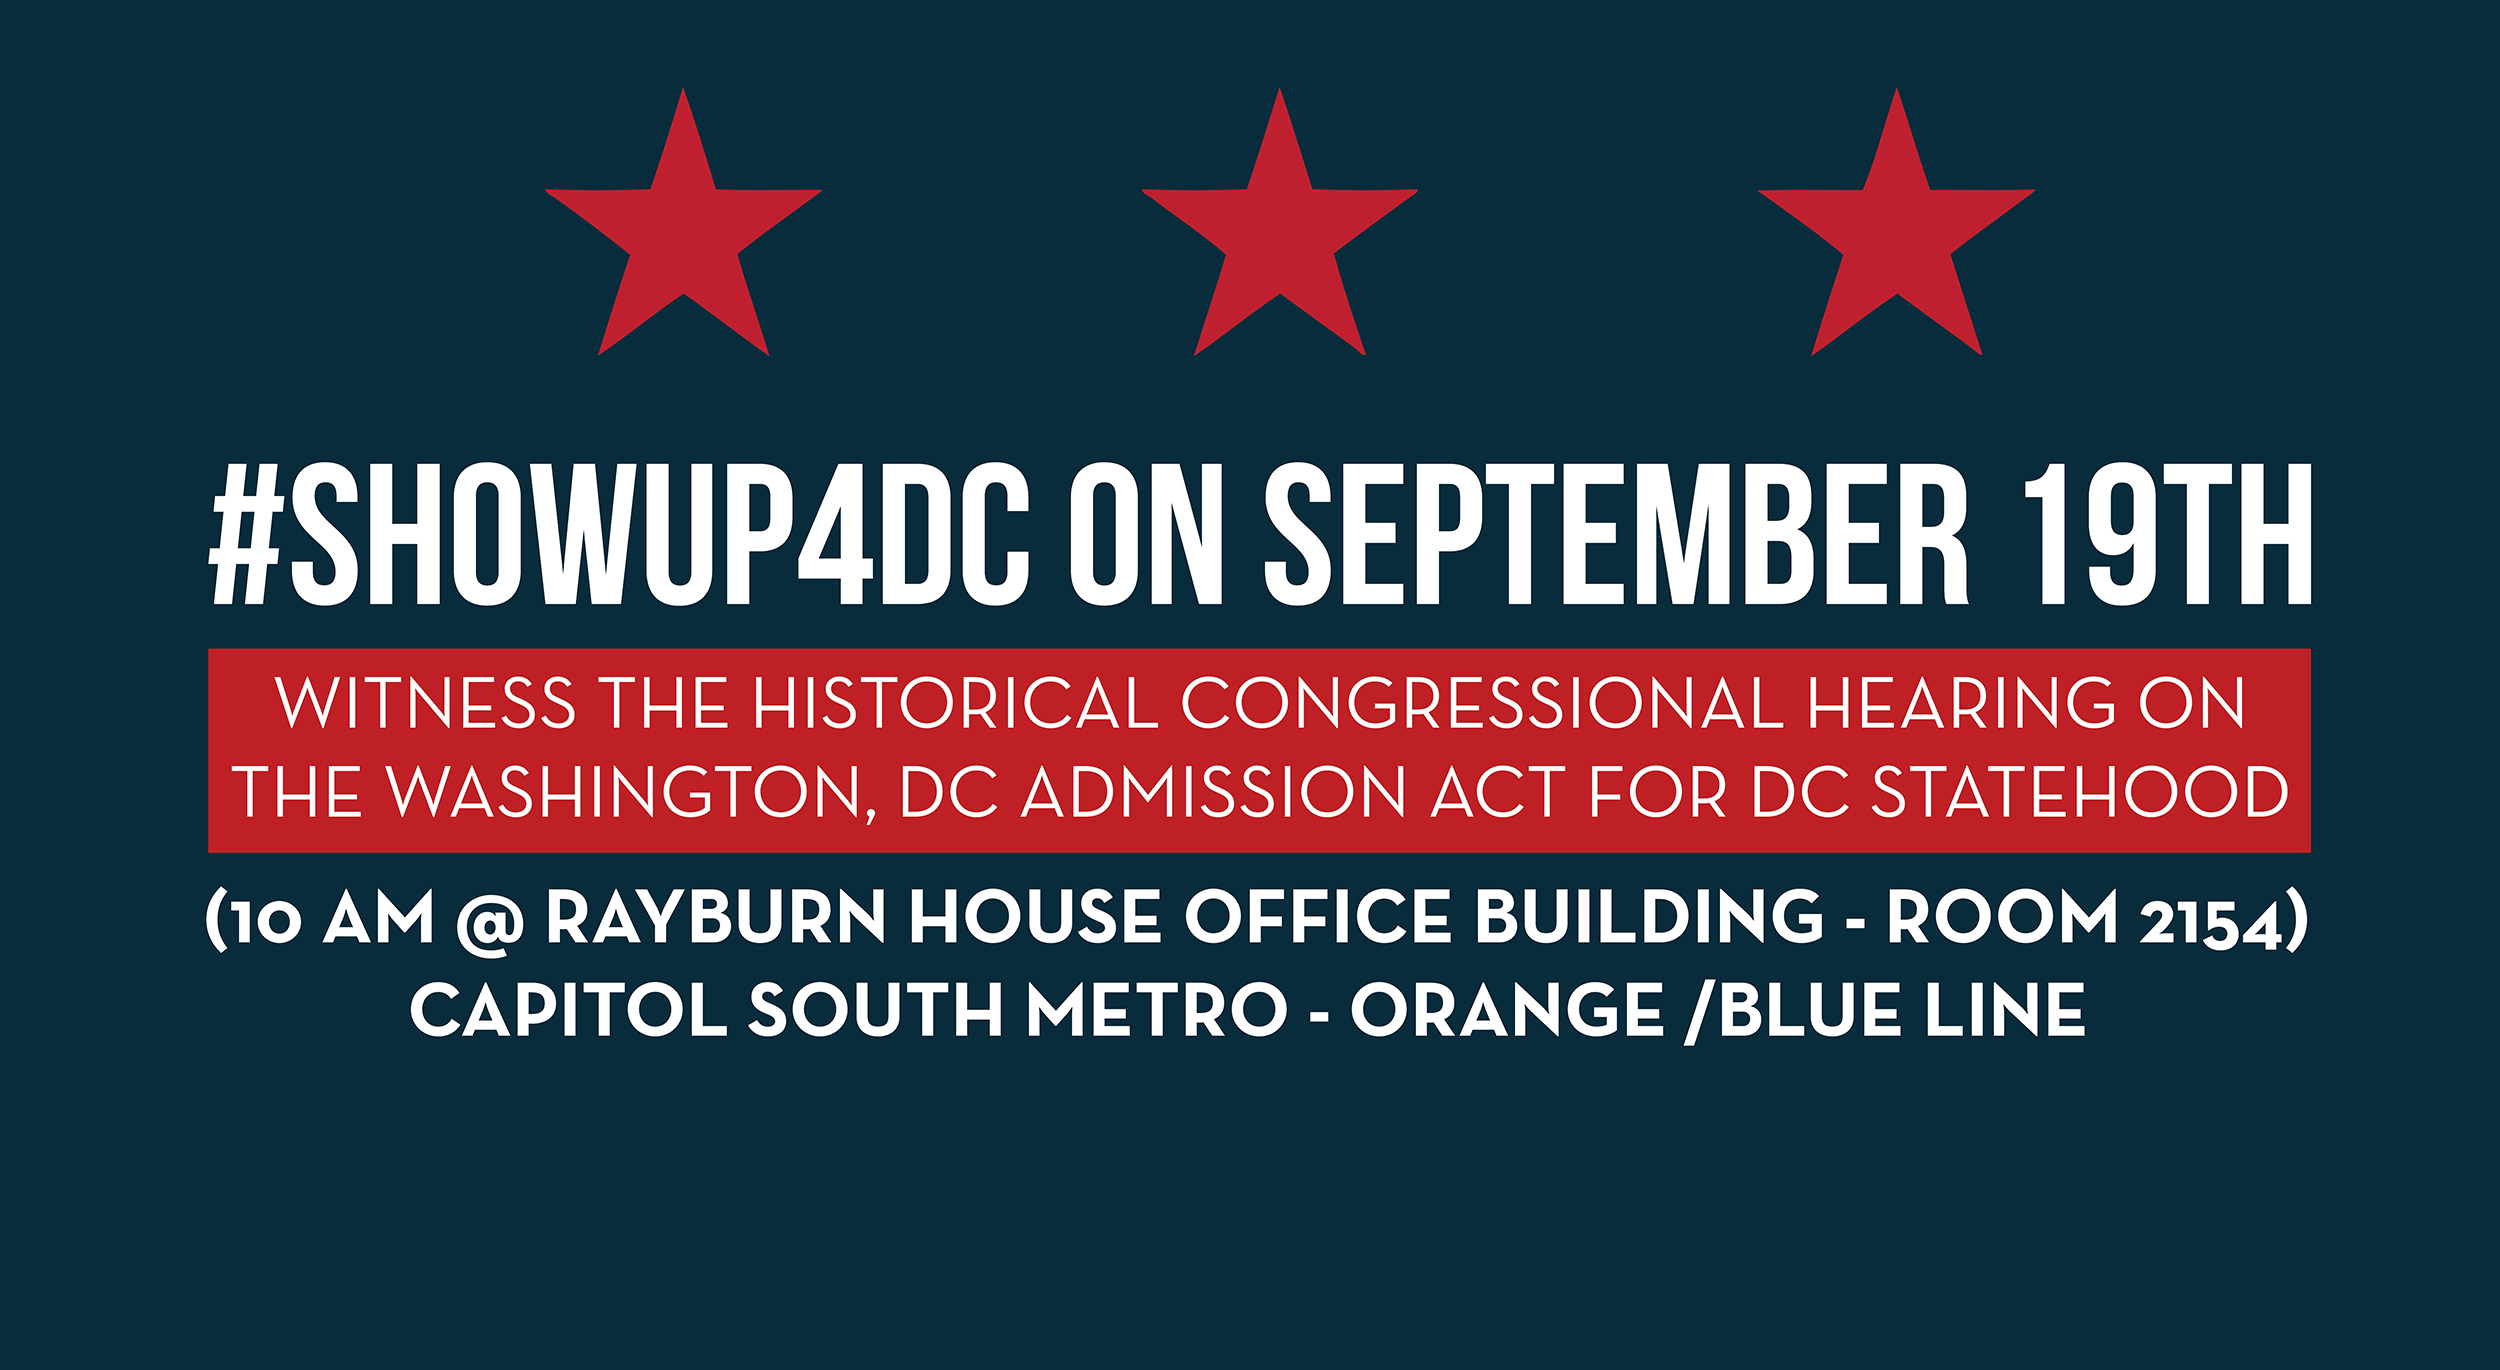 Show Up for DC on September 19